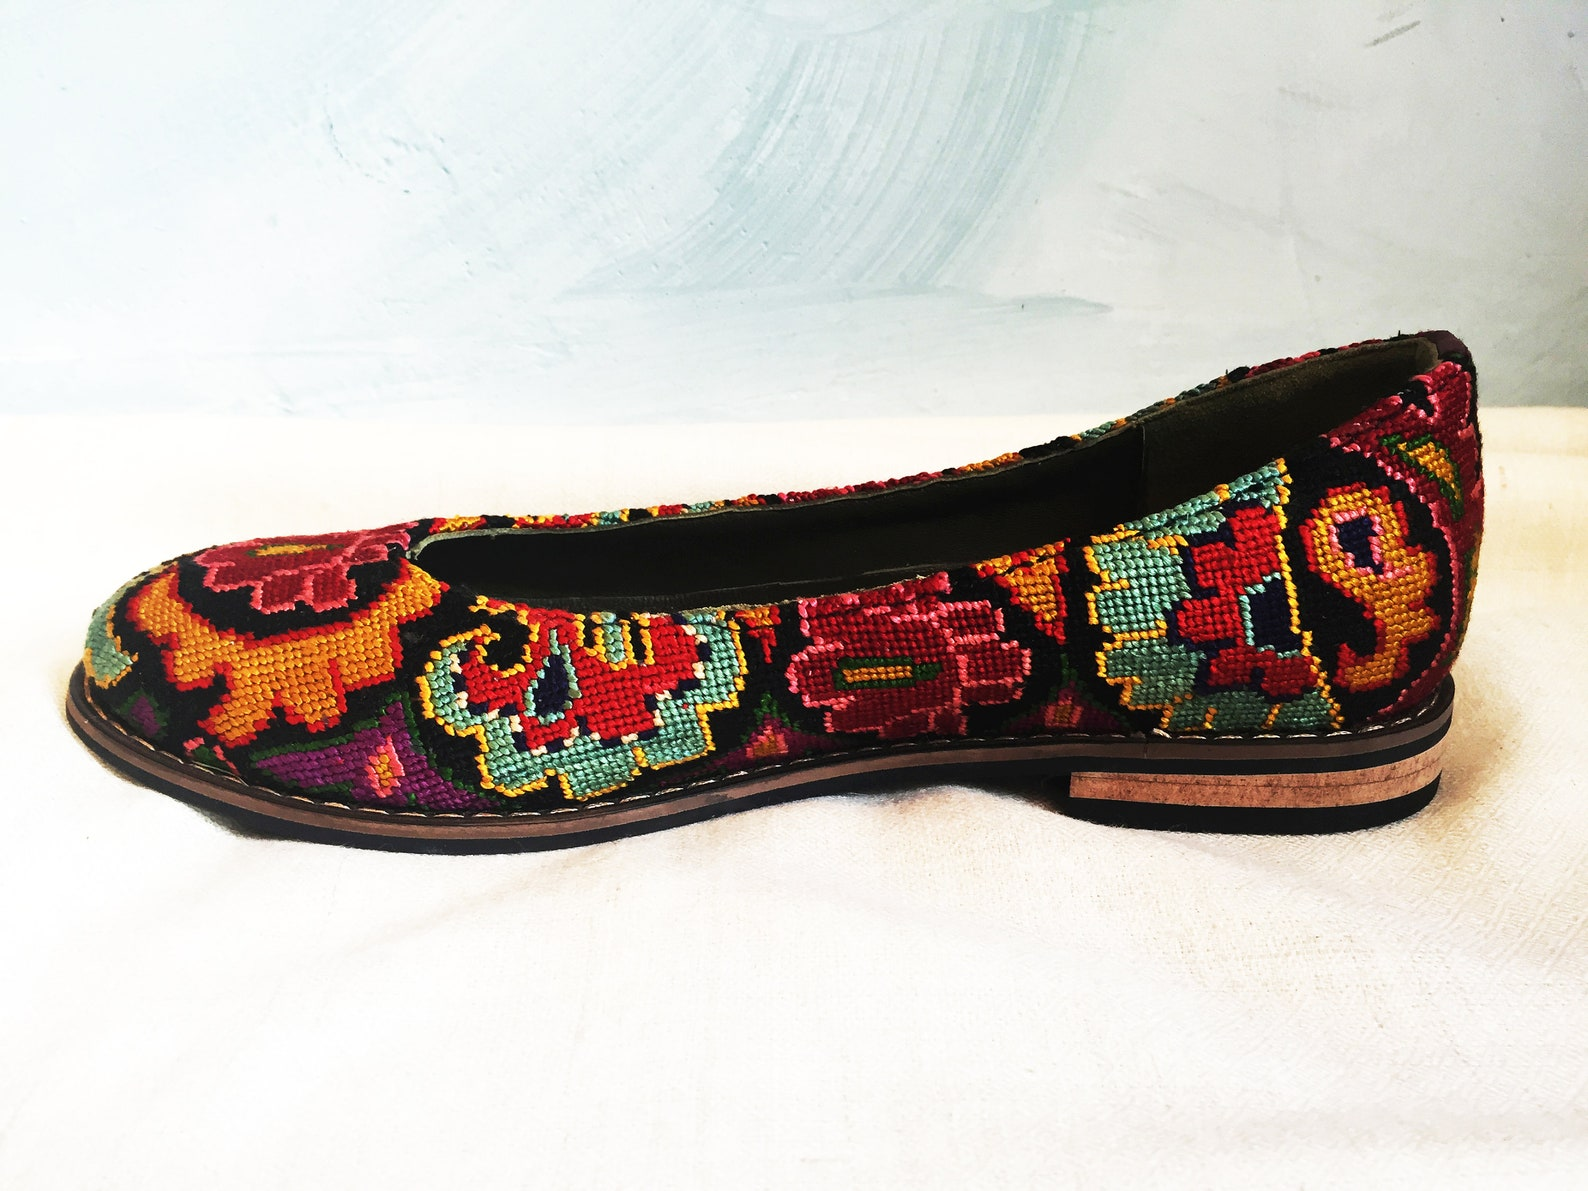 embroidered ballet flats- size 38 (us 7.5) silk petit point uzbekistan boho festival rounded toe slip on needlepoint paisley flo